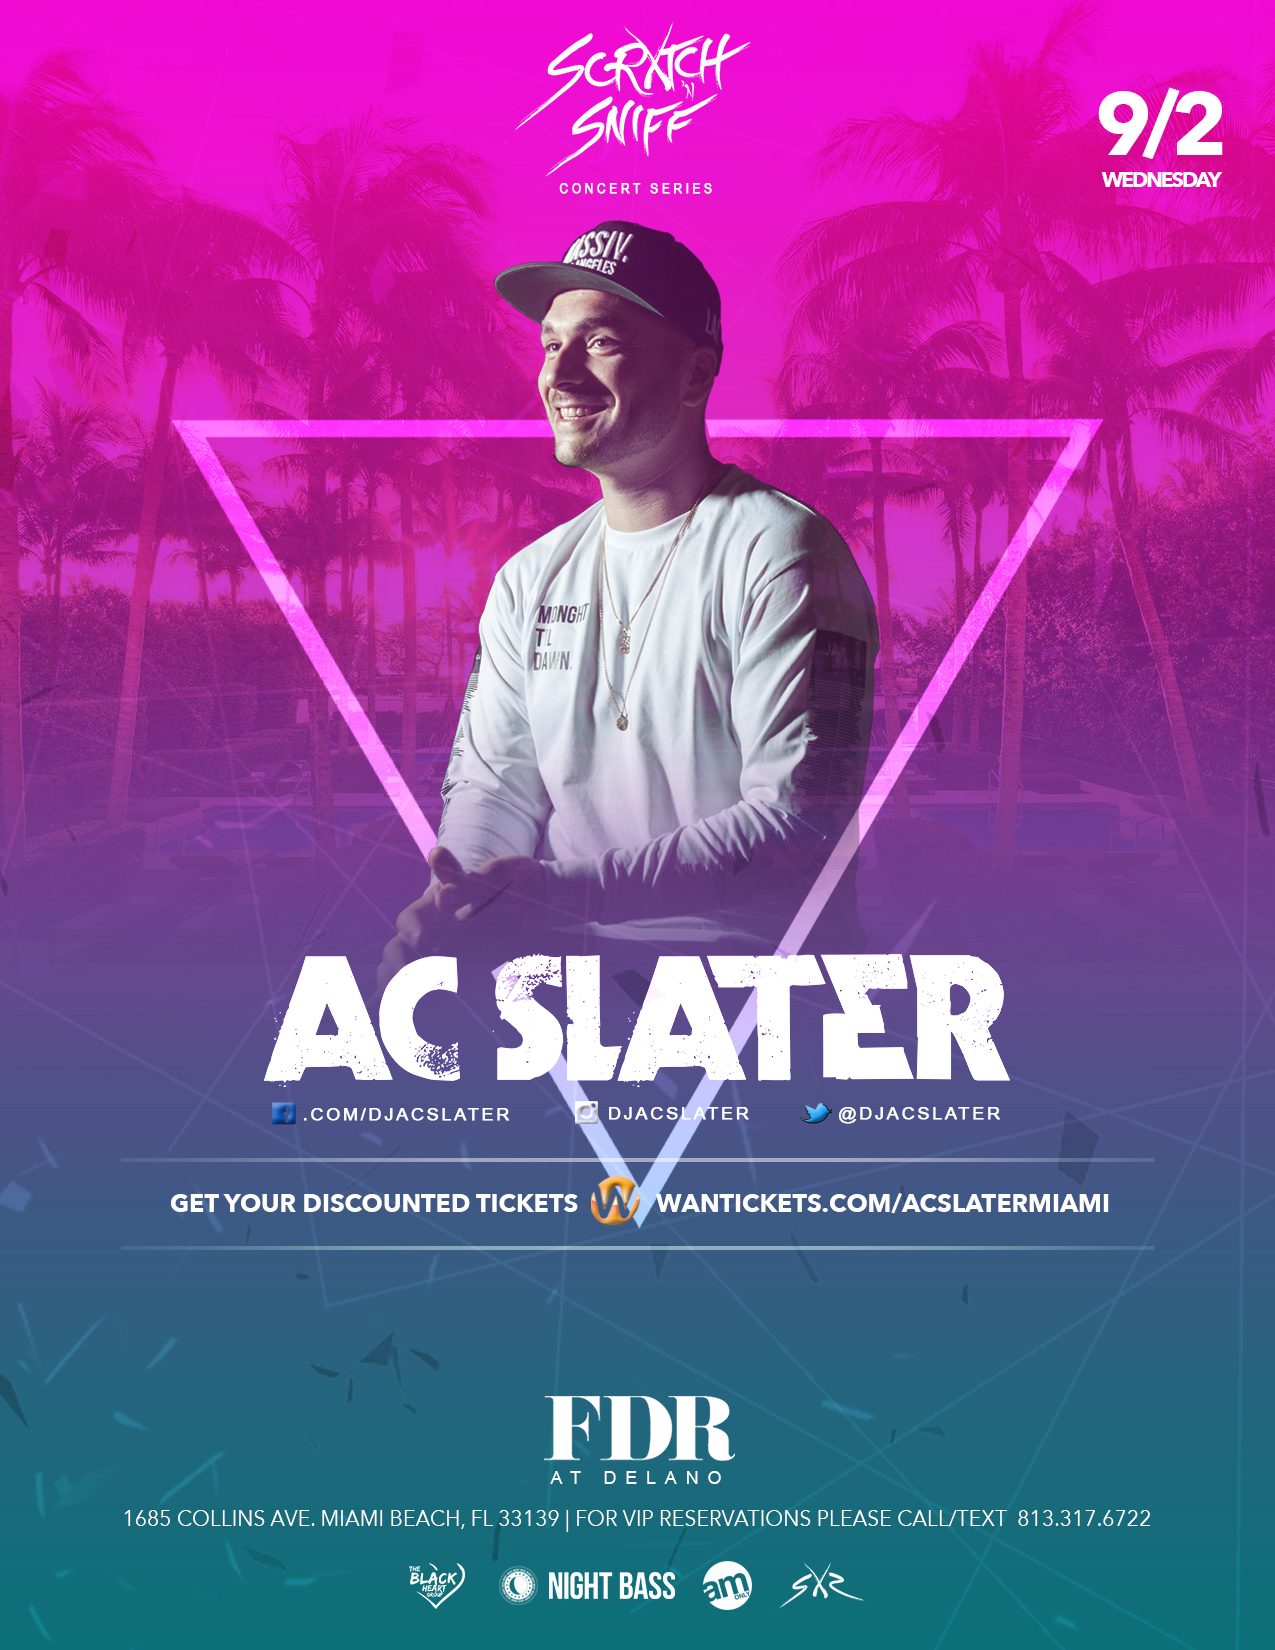 Ac Slater Live At Fdr Delano Miami Beach Fl Tickets